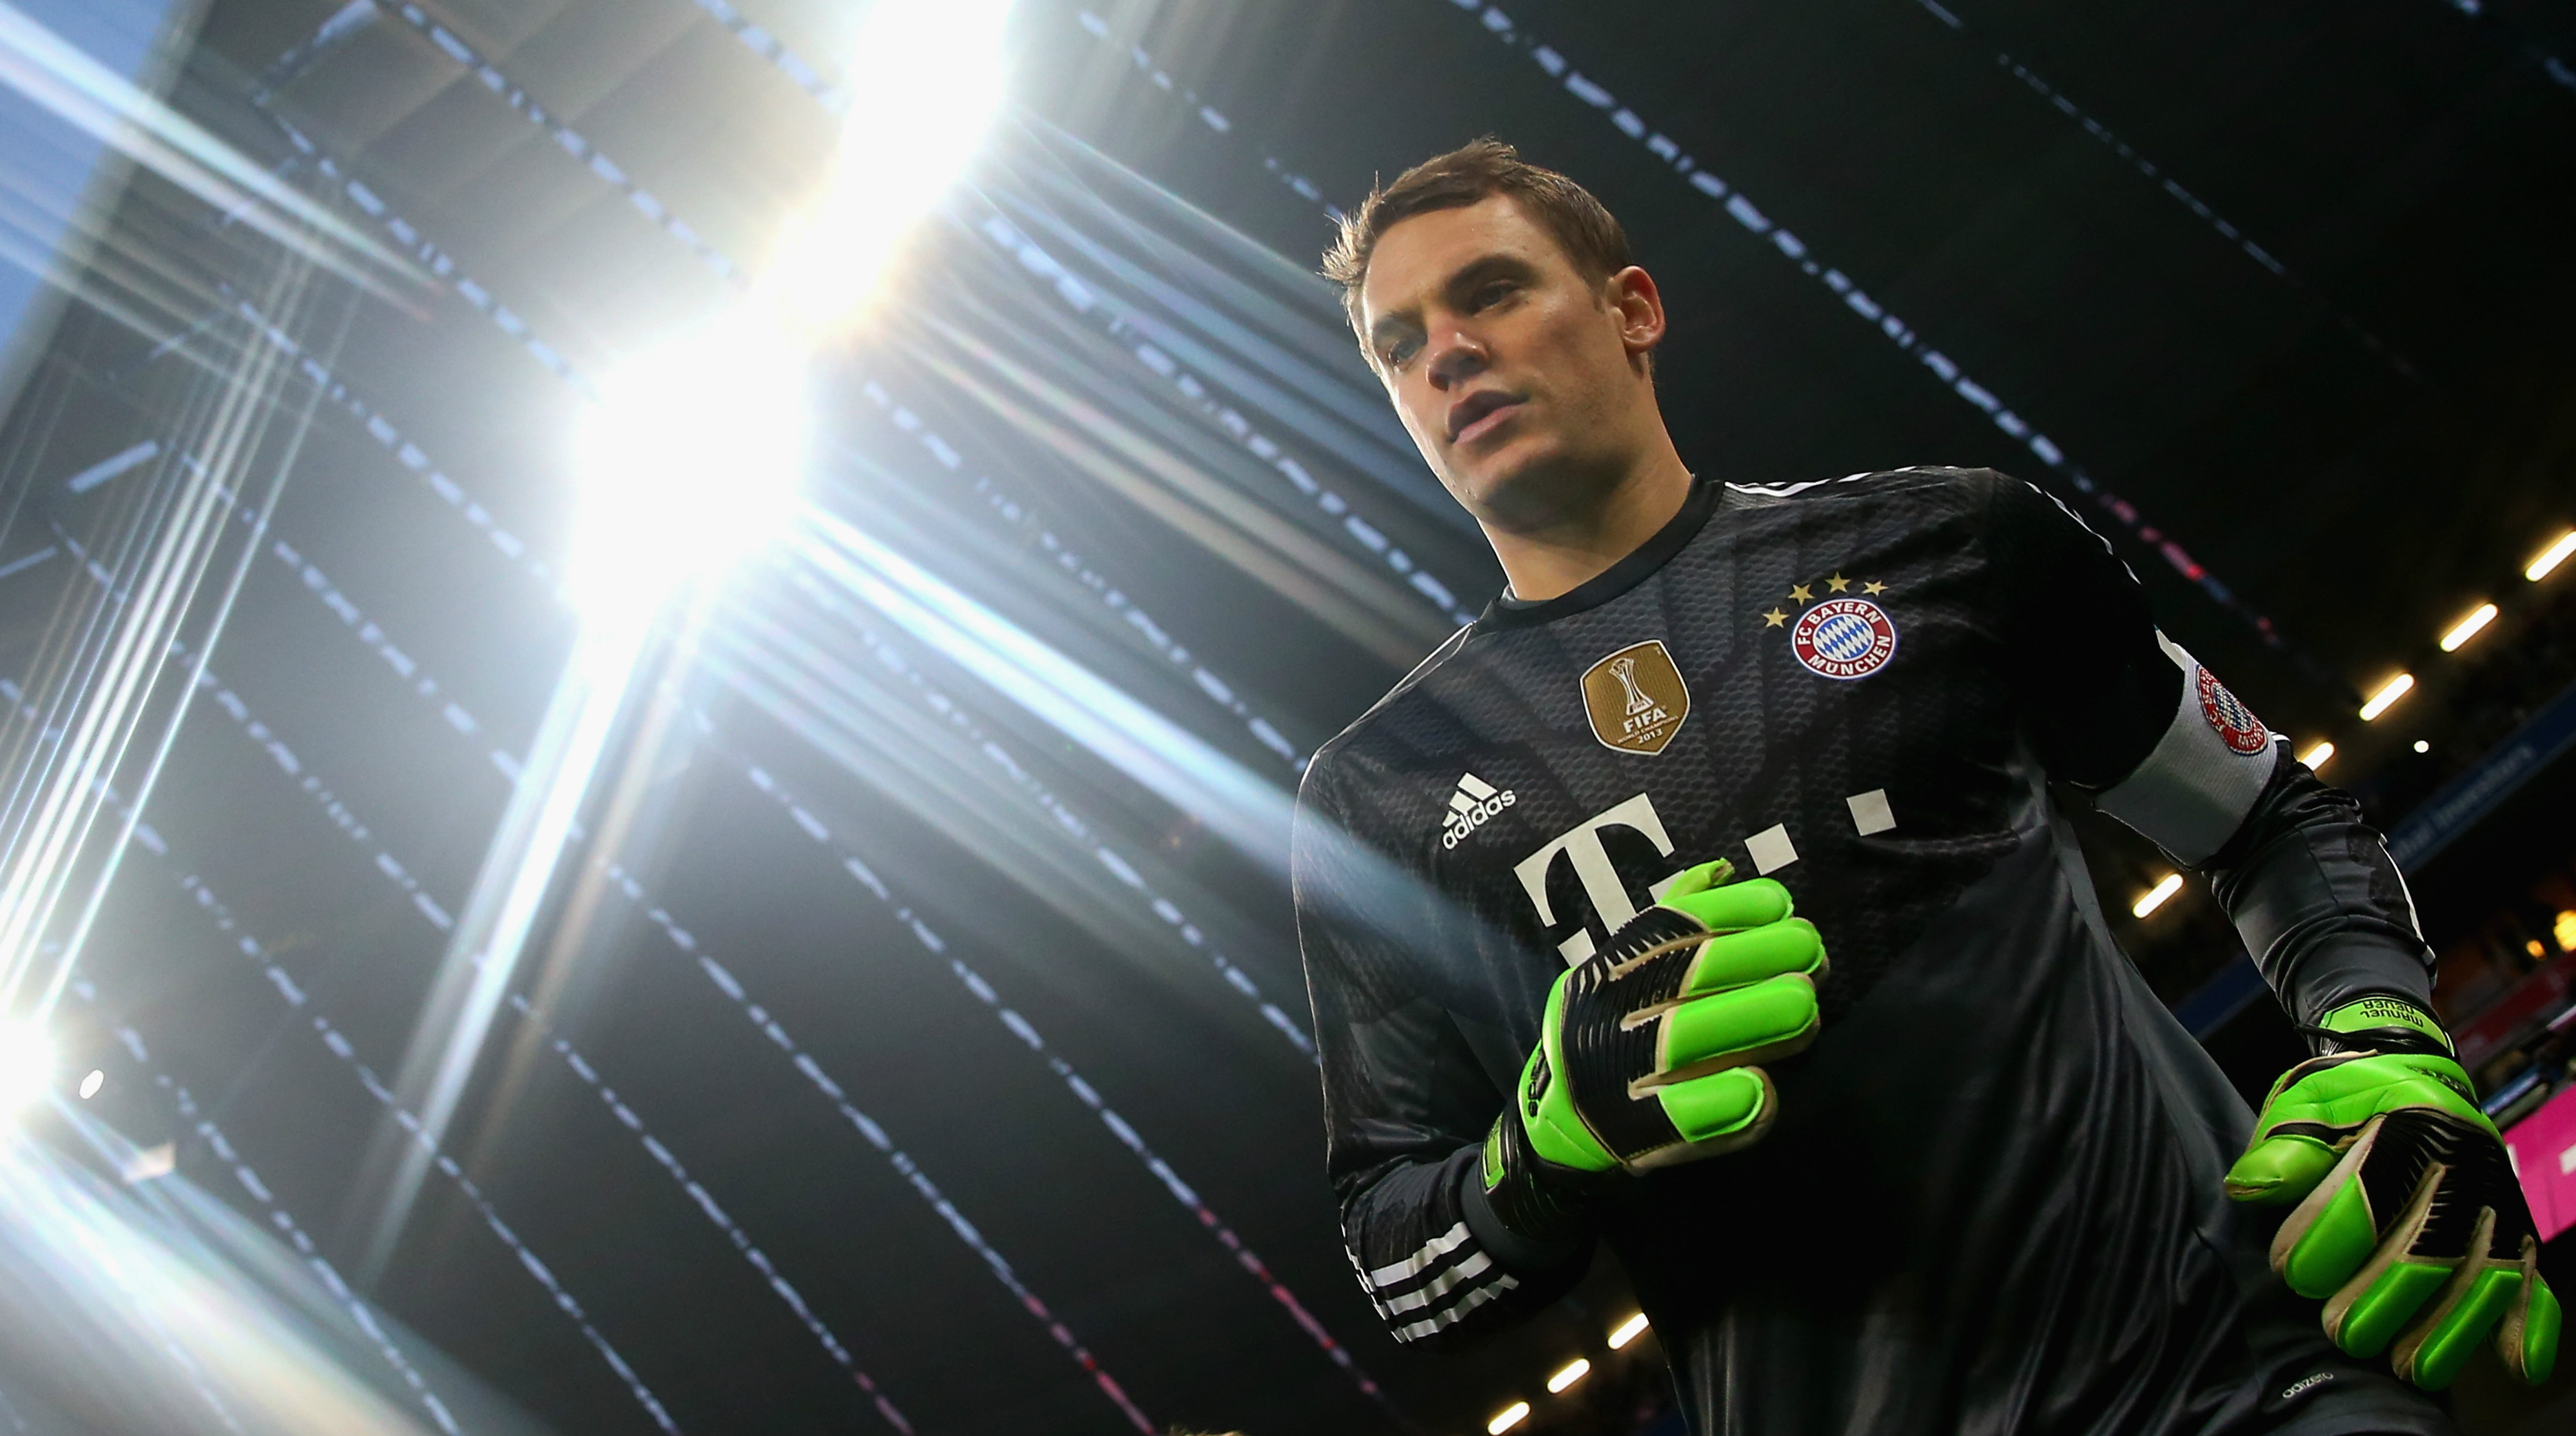 hd Manuel Neuer Wallpaper laptop free background images